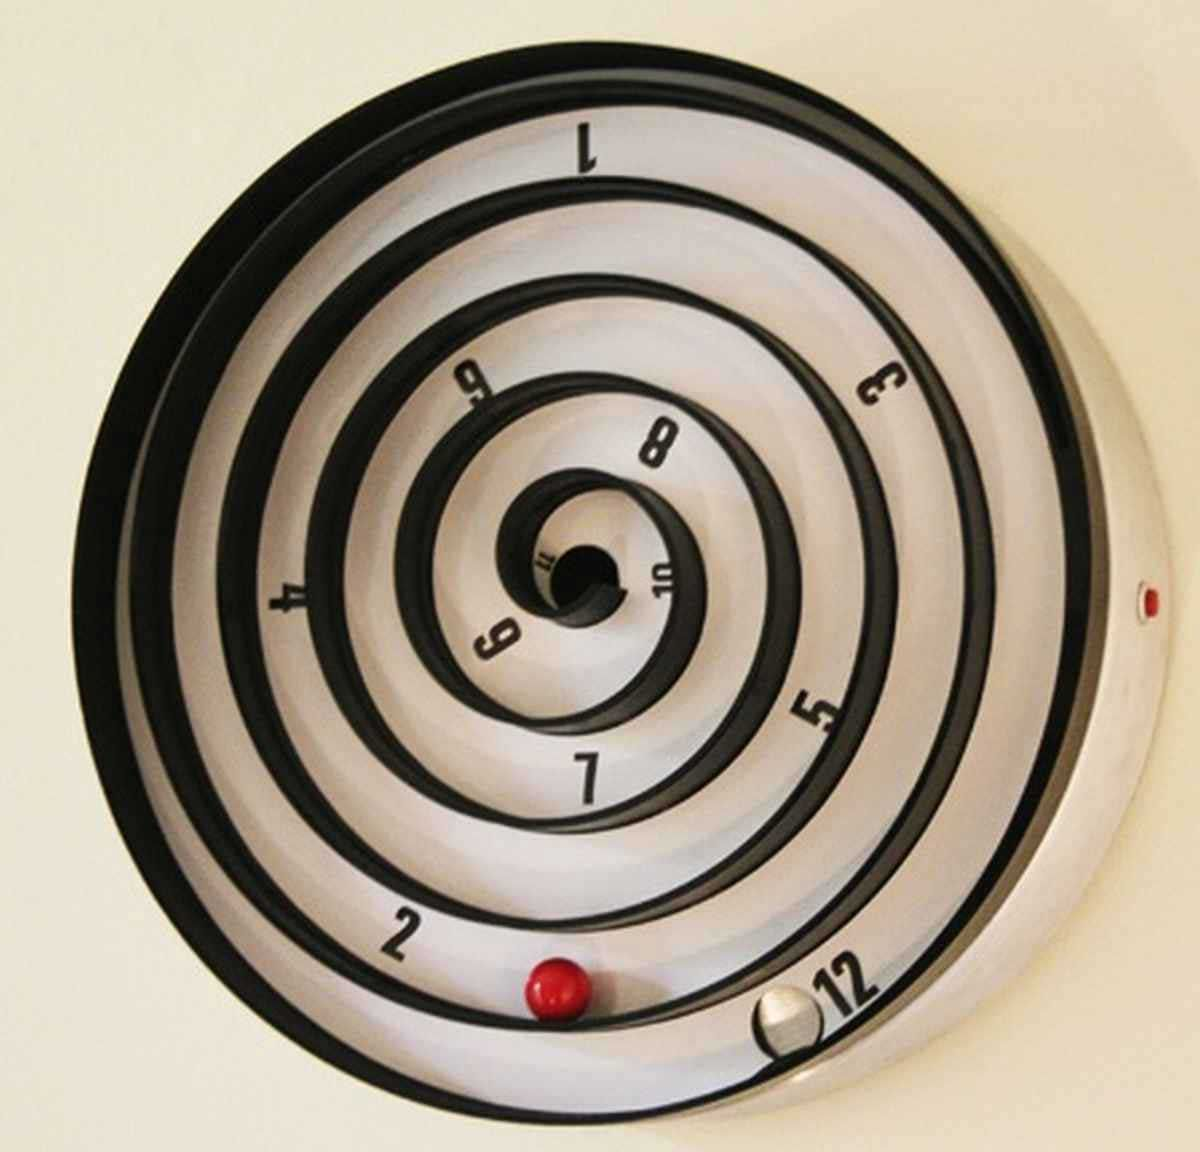 Best Creative Clock Ideas Clock Ideas Clocks And Wall Clocks